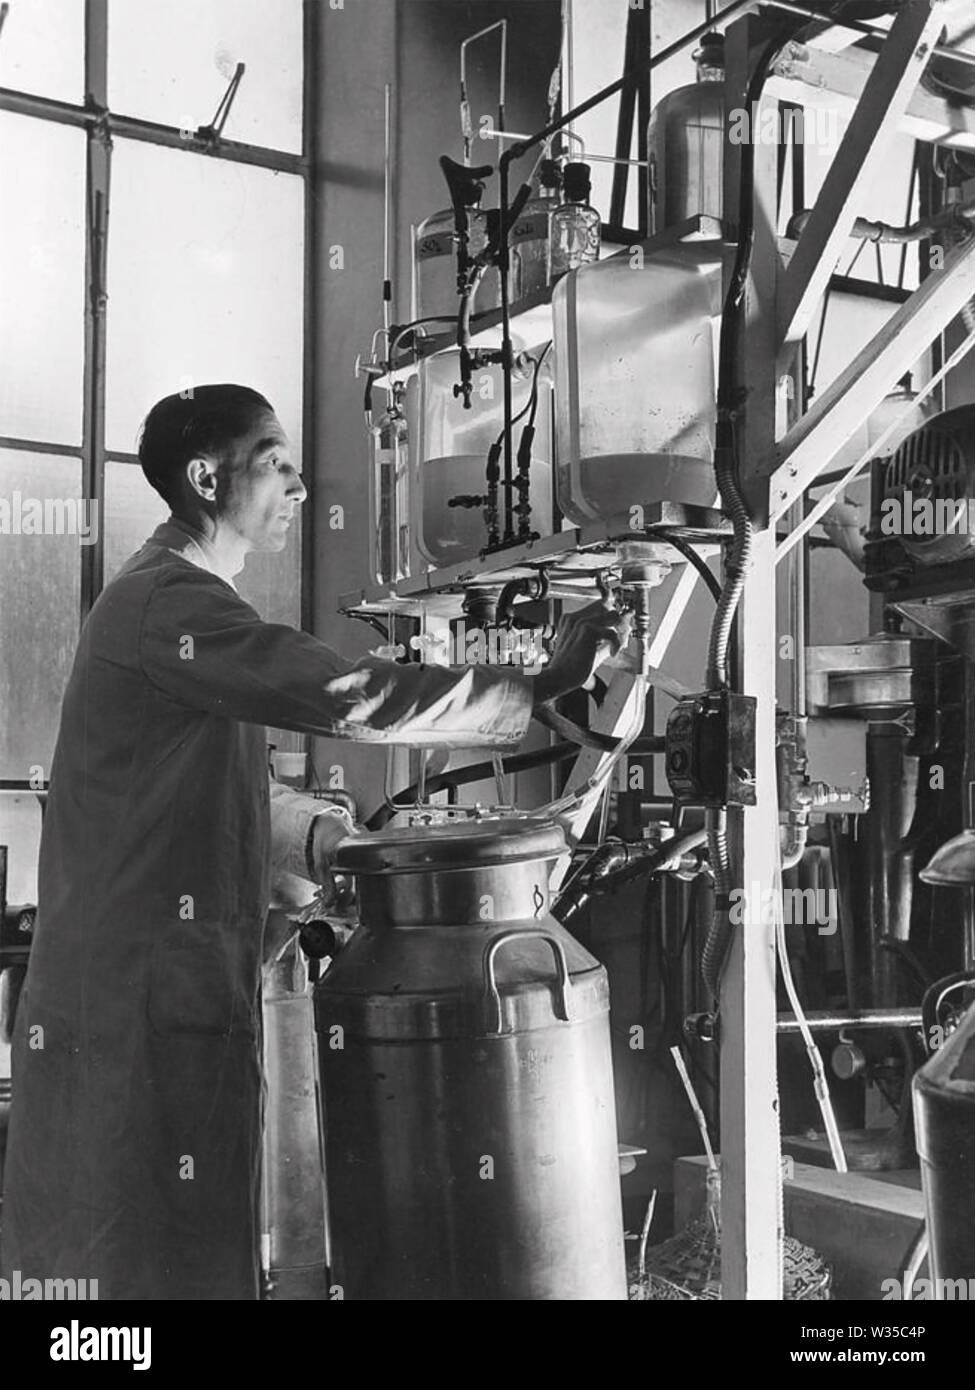 ARTHUR GORDON SANDERS (1908-1980) operating the penicillin extraction plant pioneered by Howard Florey, Ernest Chain and Alexander Fleming Stock Photo